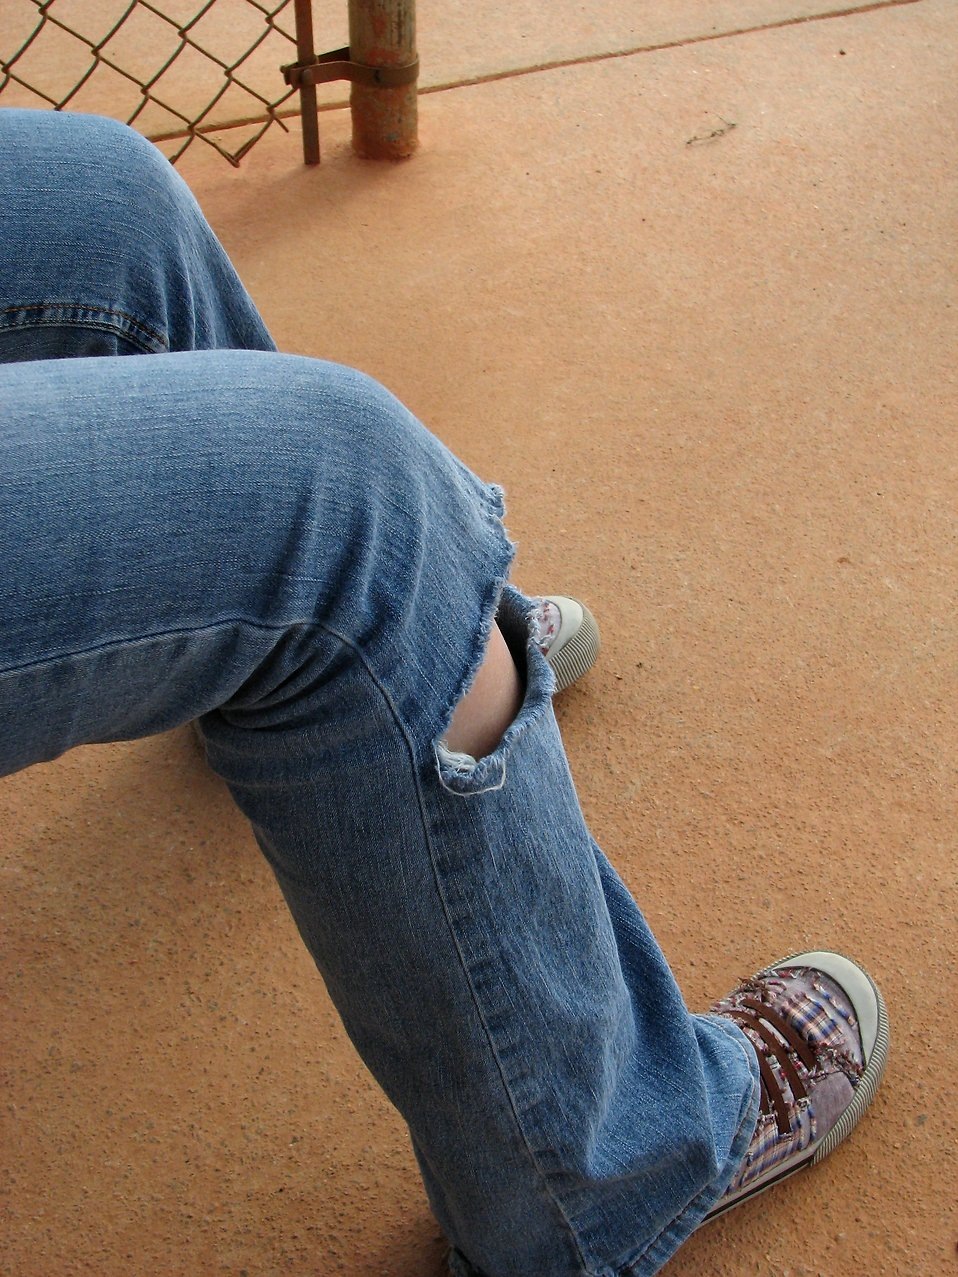 Teen girl with ripped jeans : Free Stock Photo